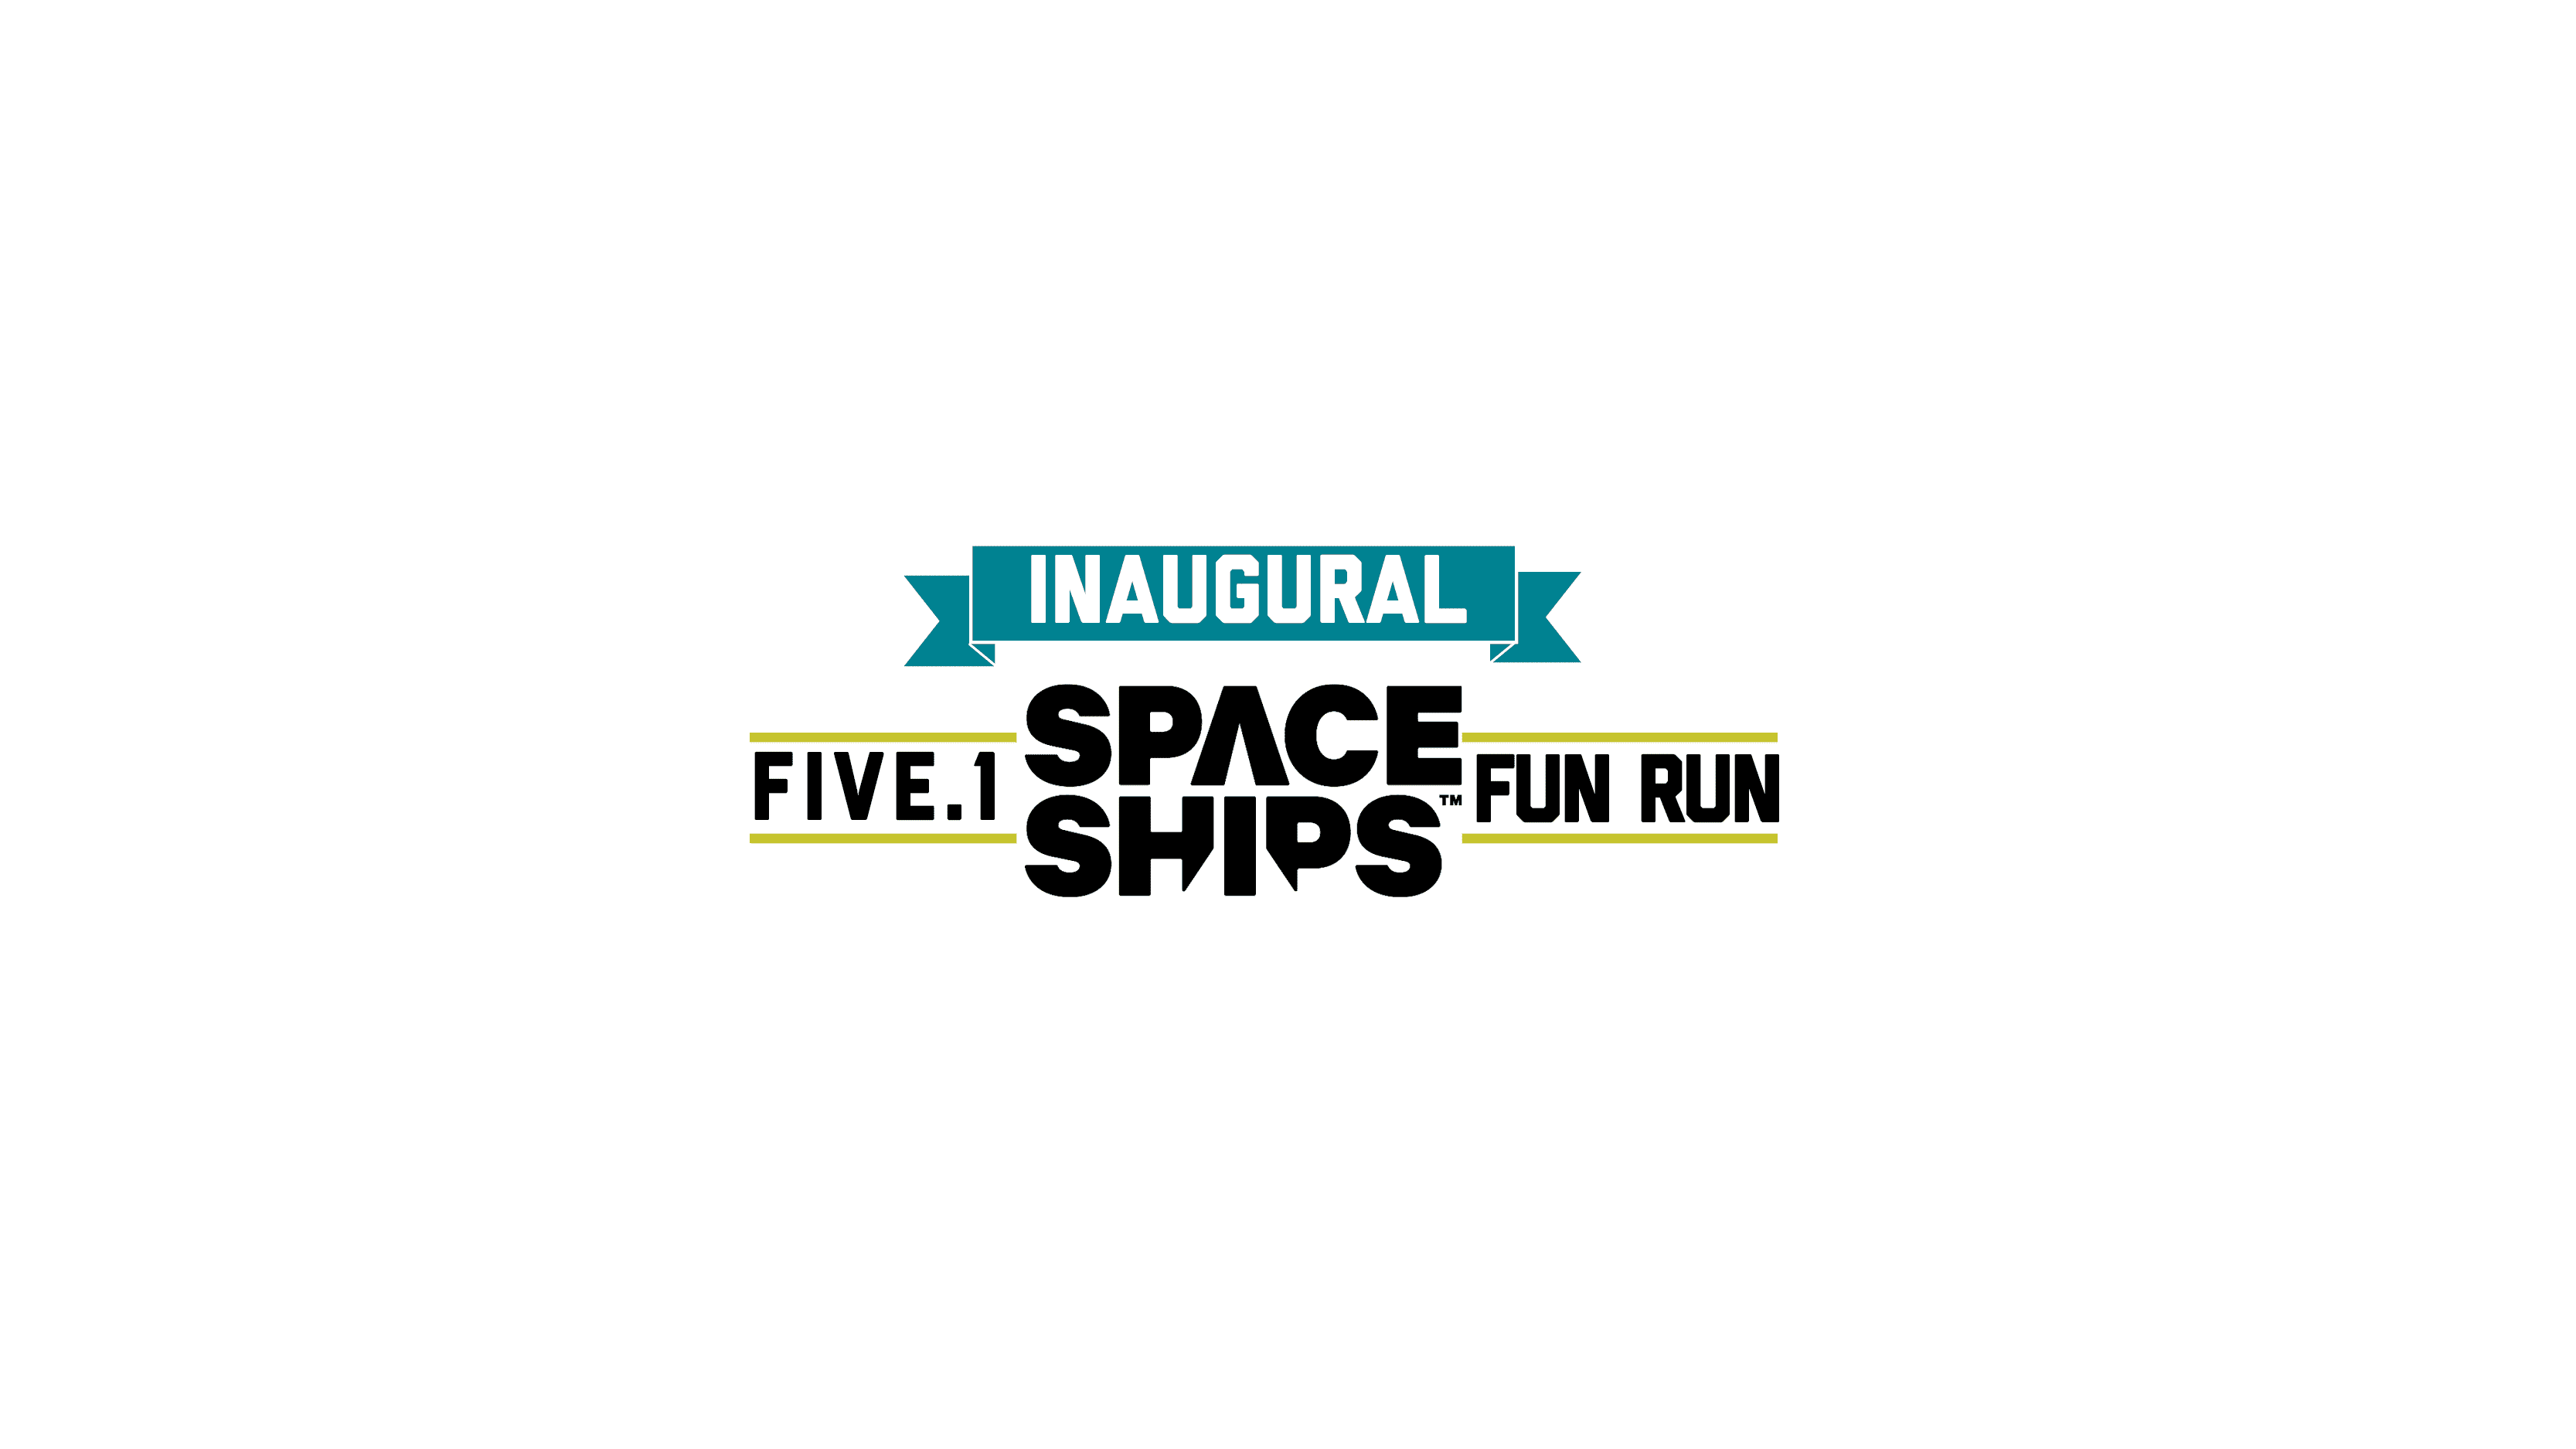 Inaugural Spaceships 5.1K Fun Run at North Vancouver's Inter River Park